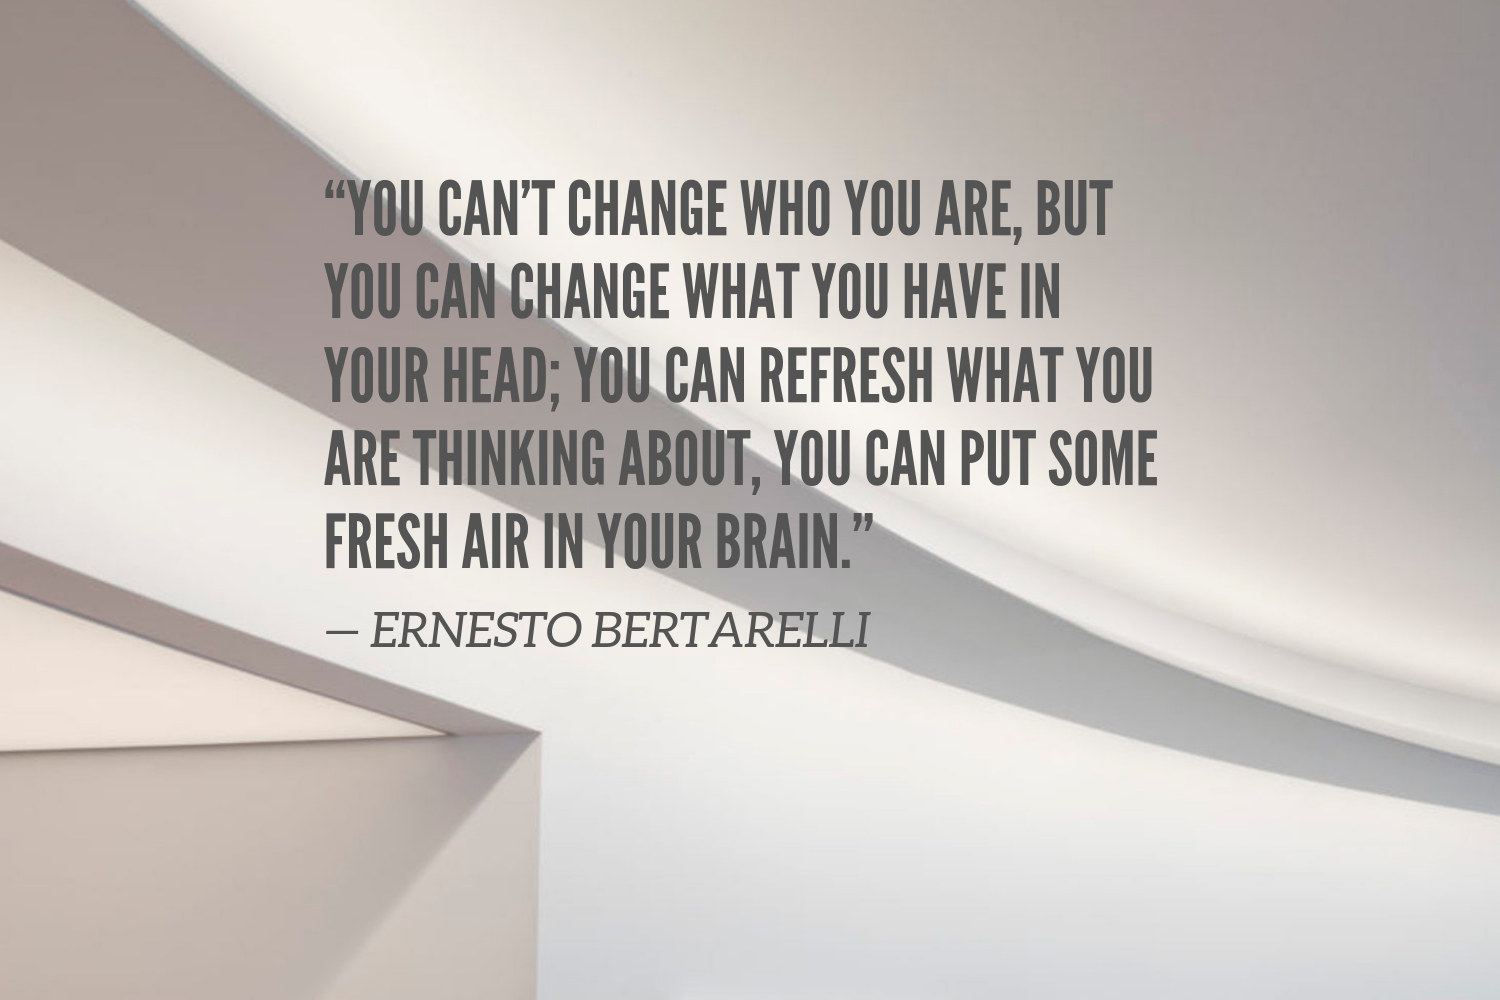 """""""You can't change who you are, but you can change what you have in your head; you can refresh what you are thinking about, you can put some fresh air in your brain."""" — Ernesto Bertarelli (3).png"""